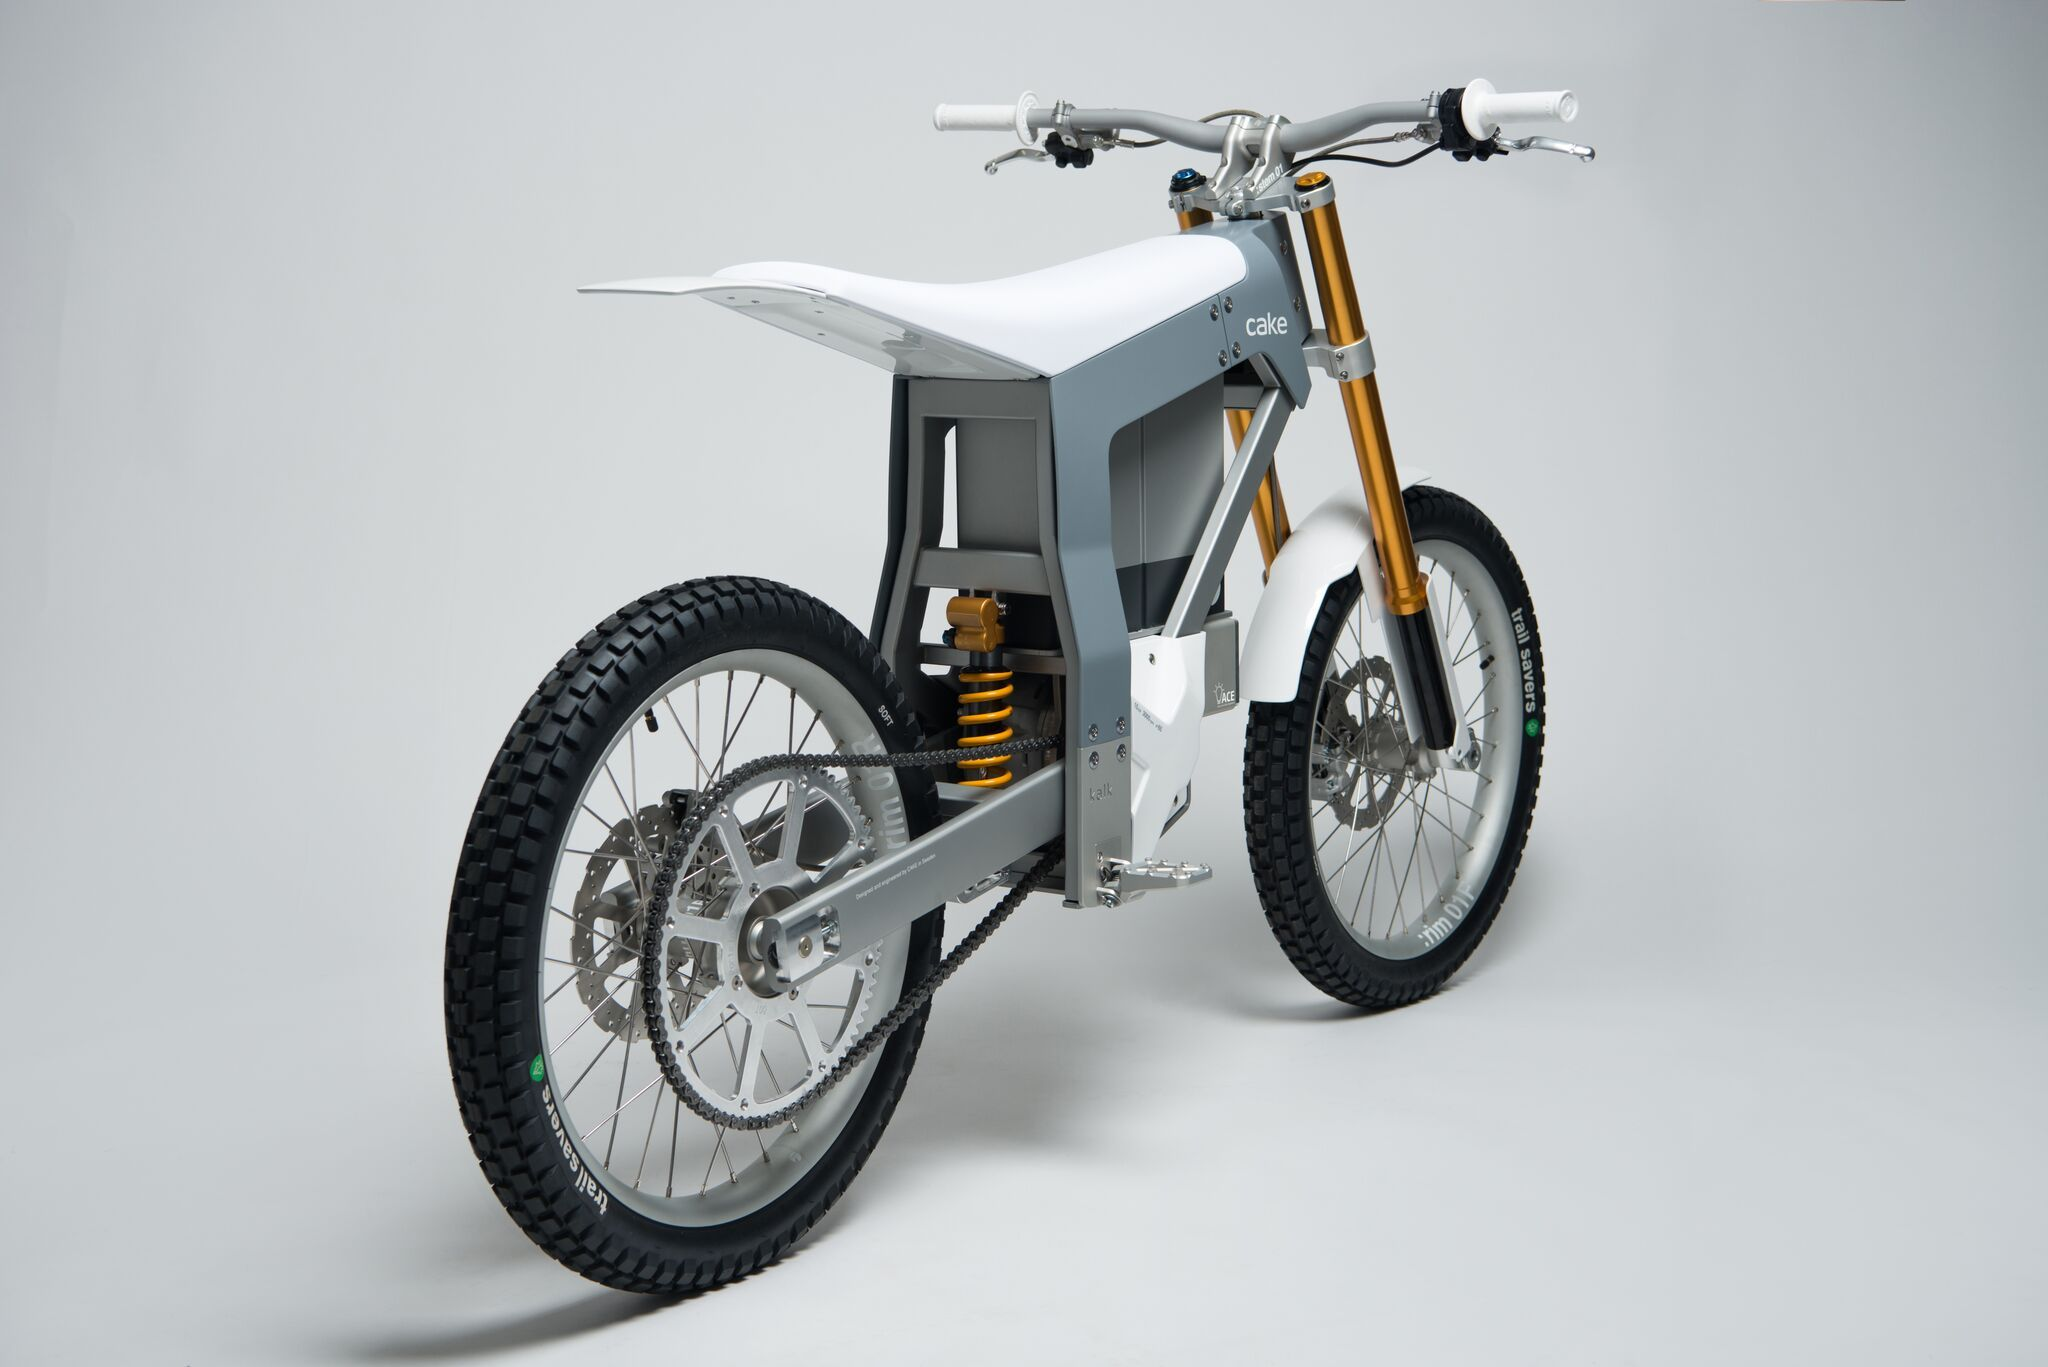 Cake Aims to Reinvent the Electric Dirt Bike   Bici